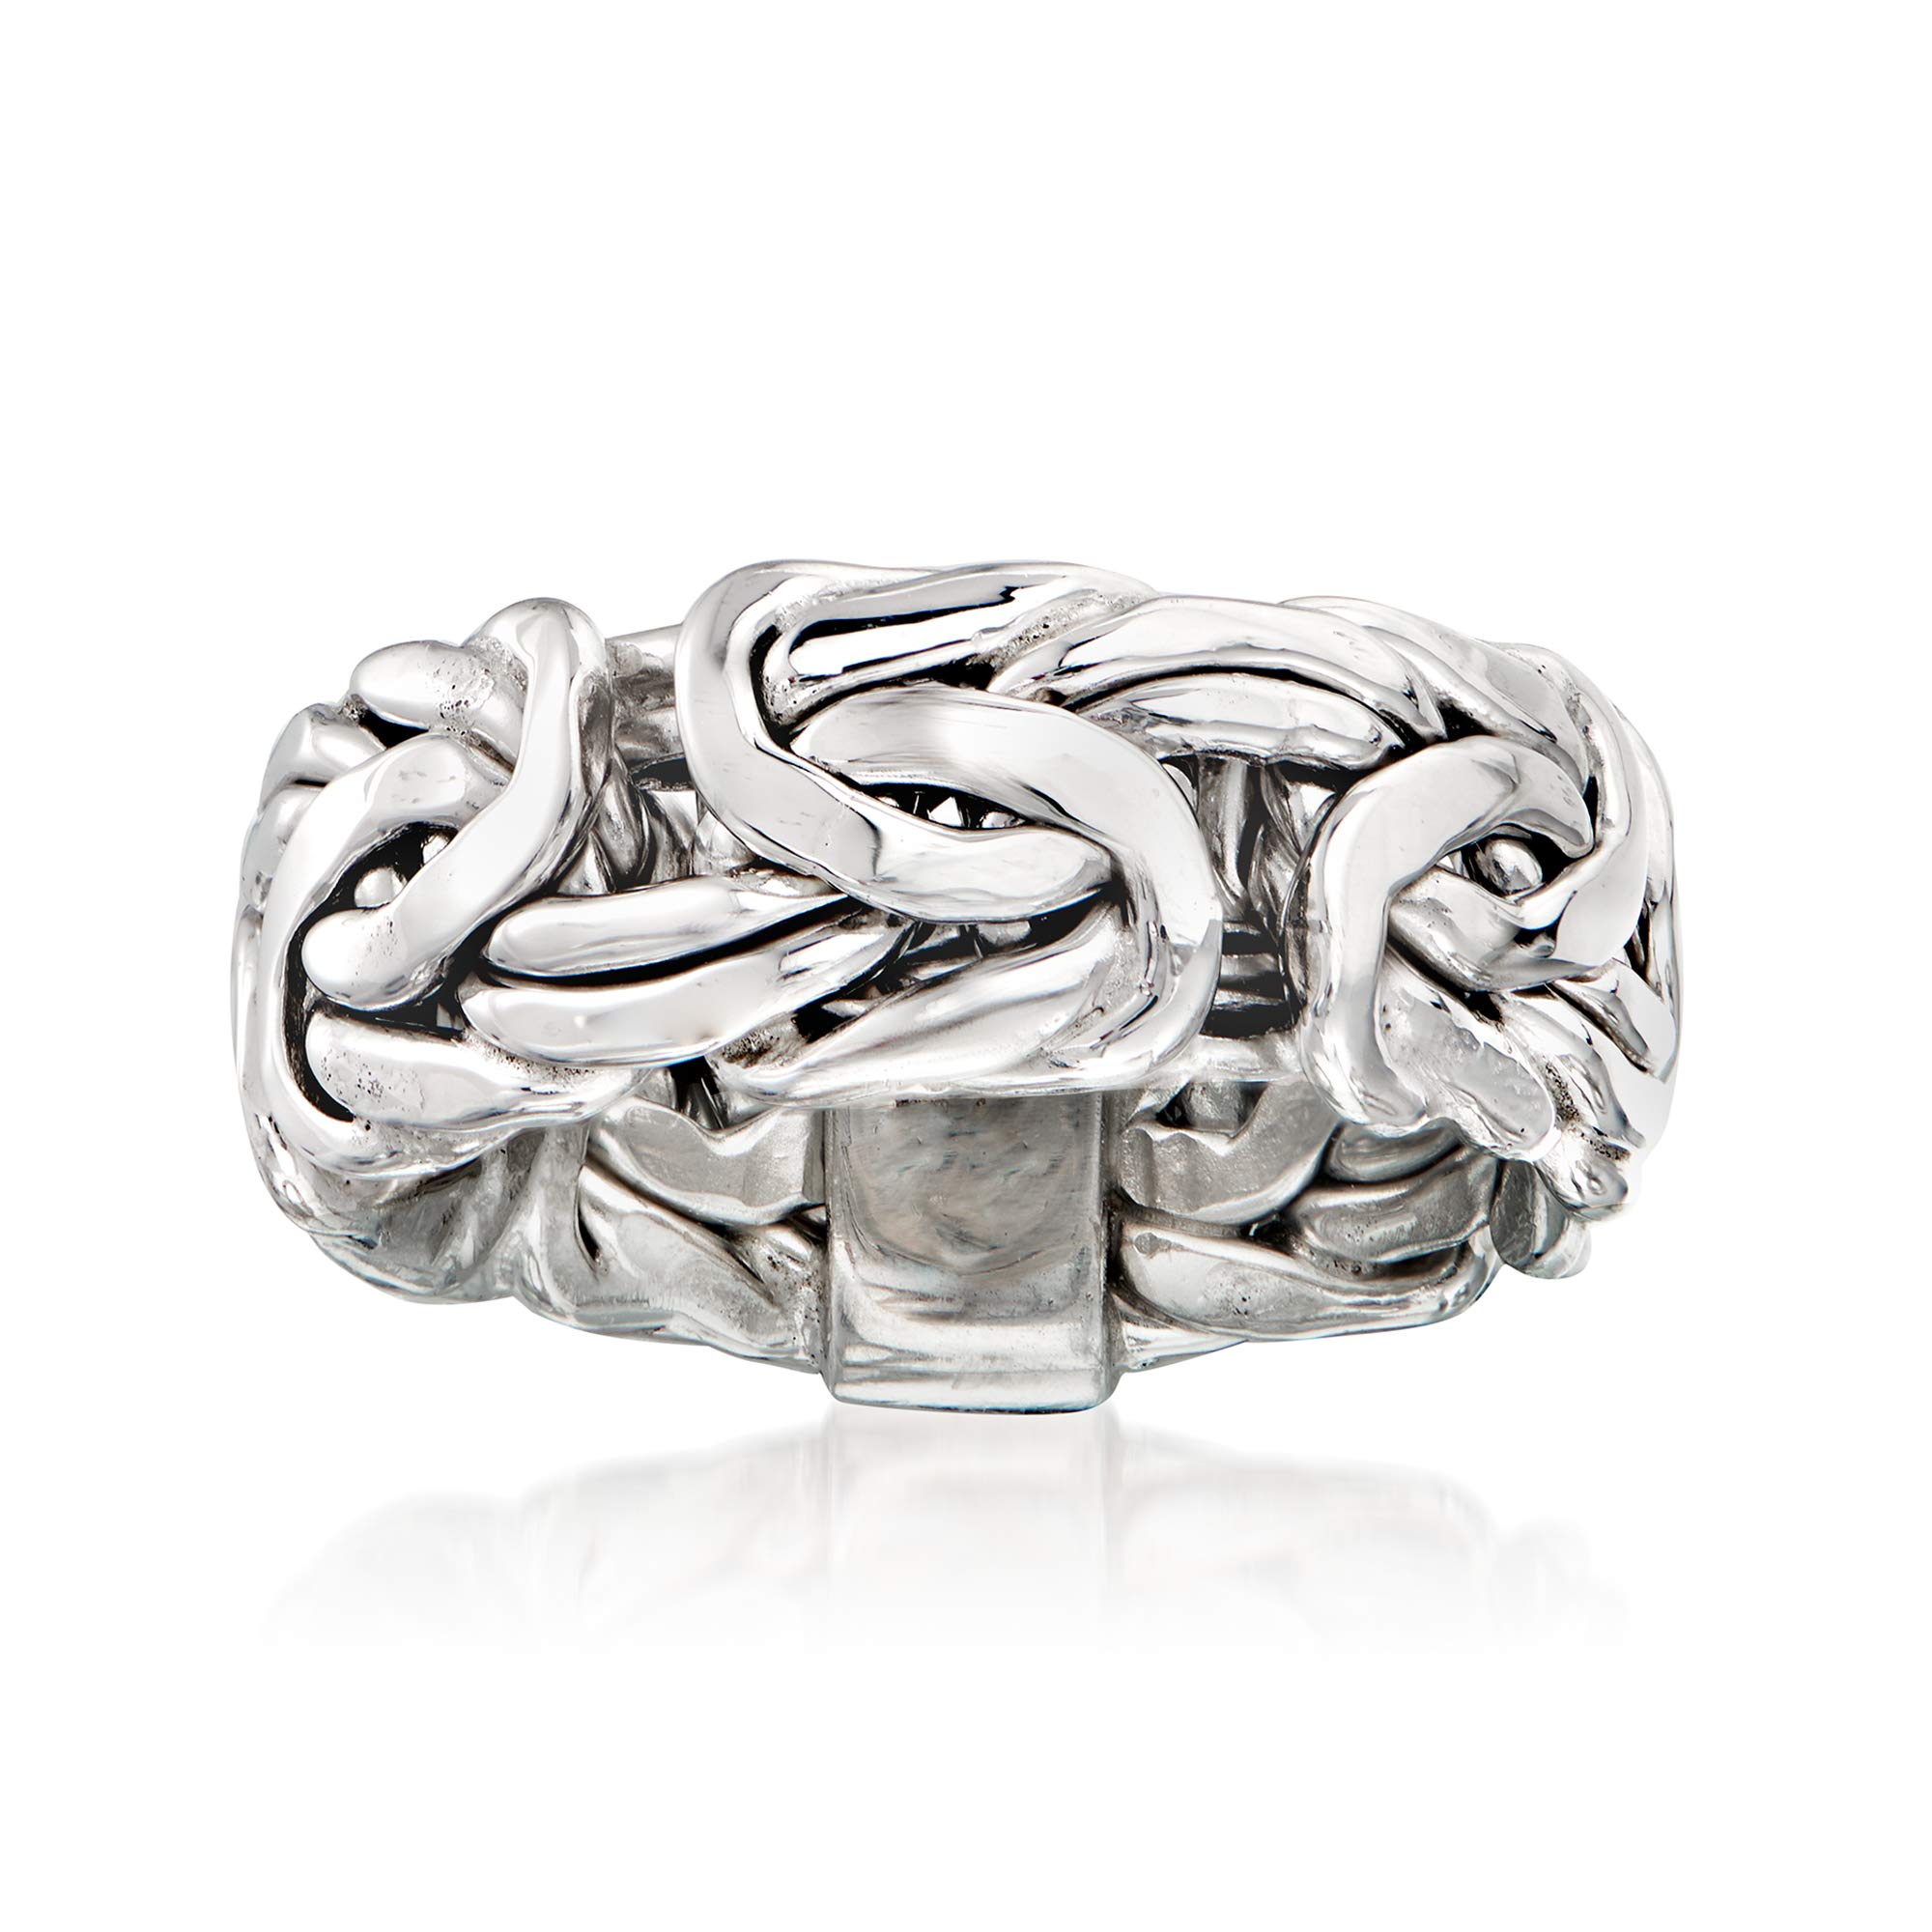 Ross-Simons Sterling Silver Large Byzantine Ring For Women 925